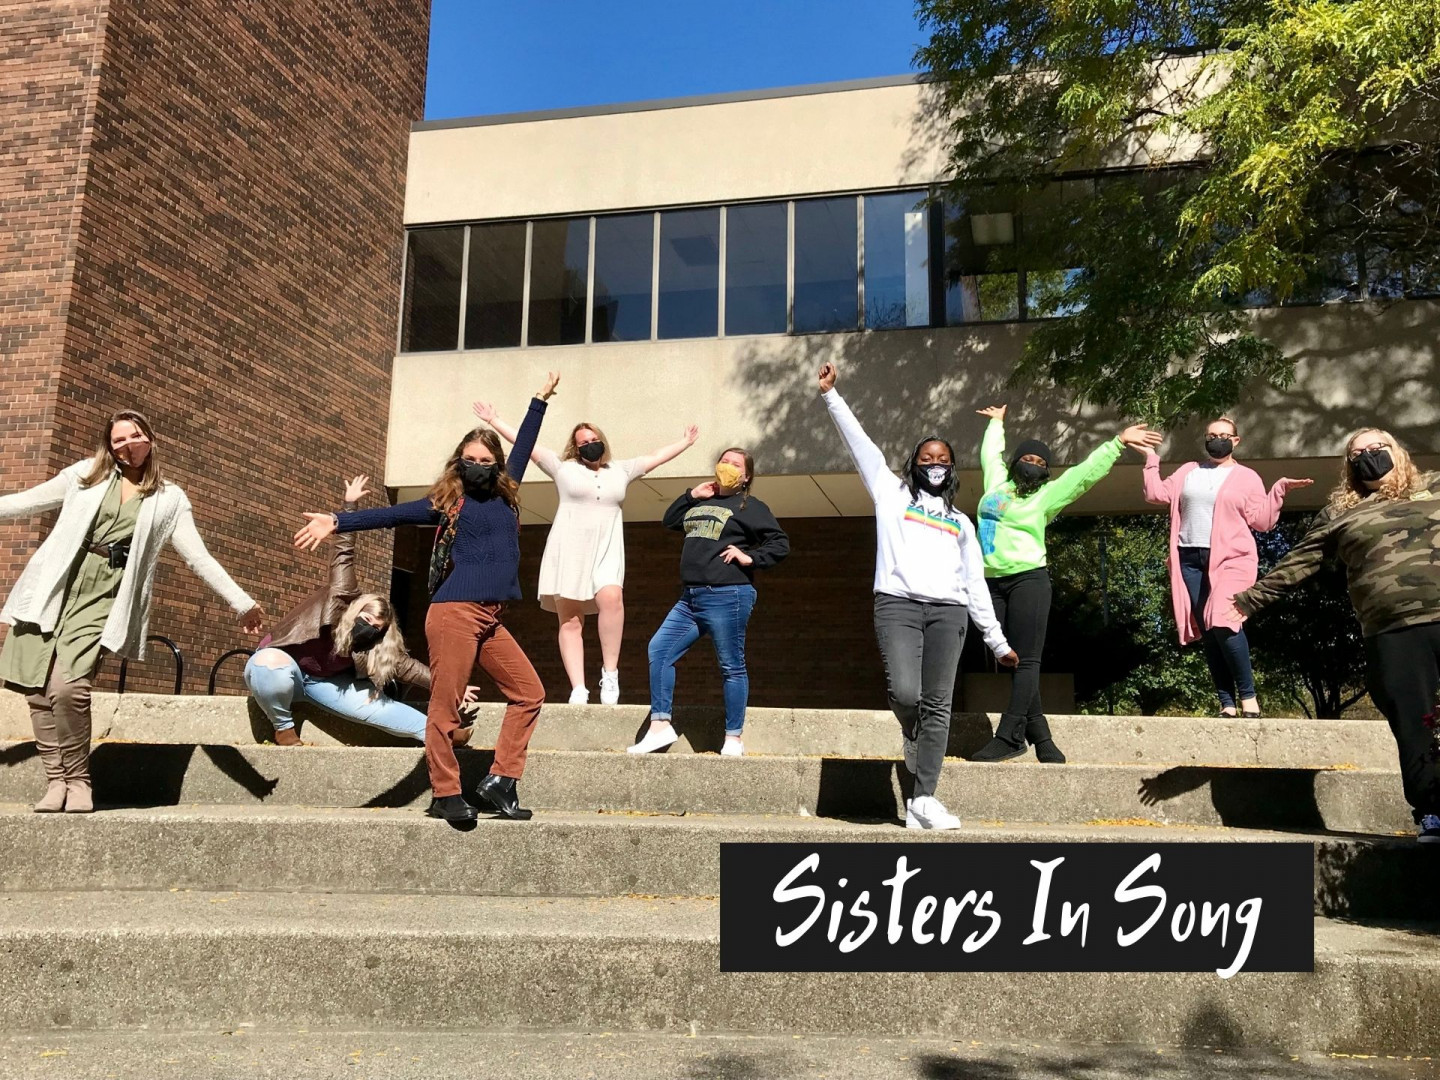 Students pose for a picture on steps on campus.